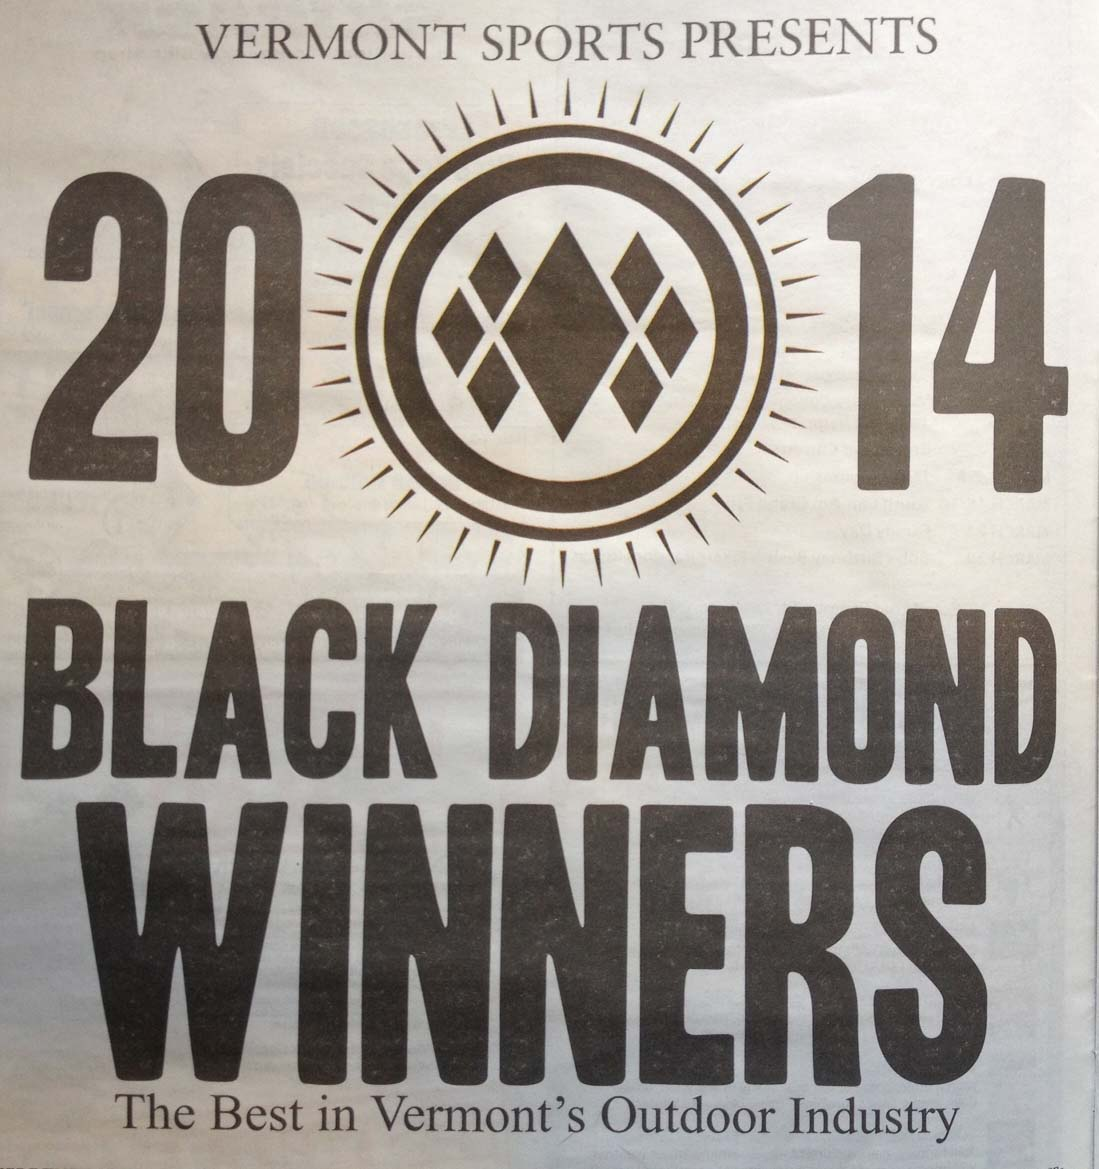 Voted Best MTB Race in Vermont by Vermont Sports Readers